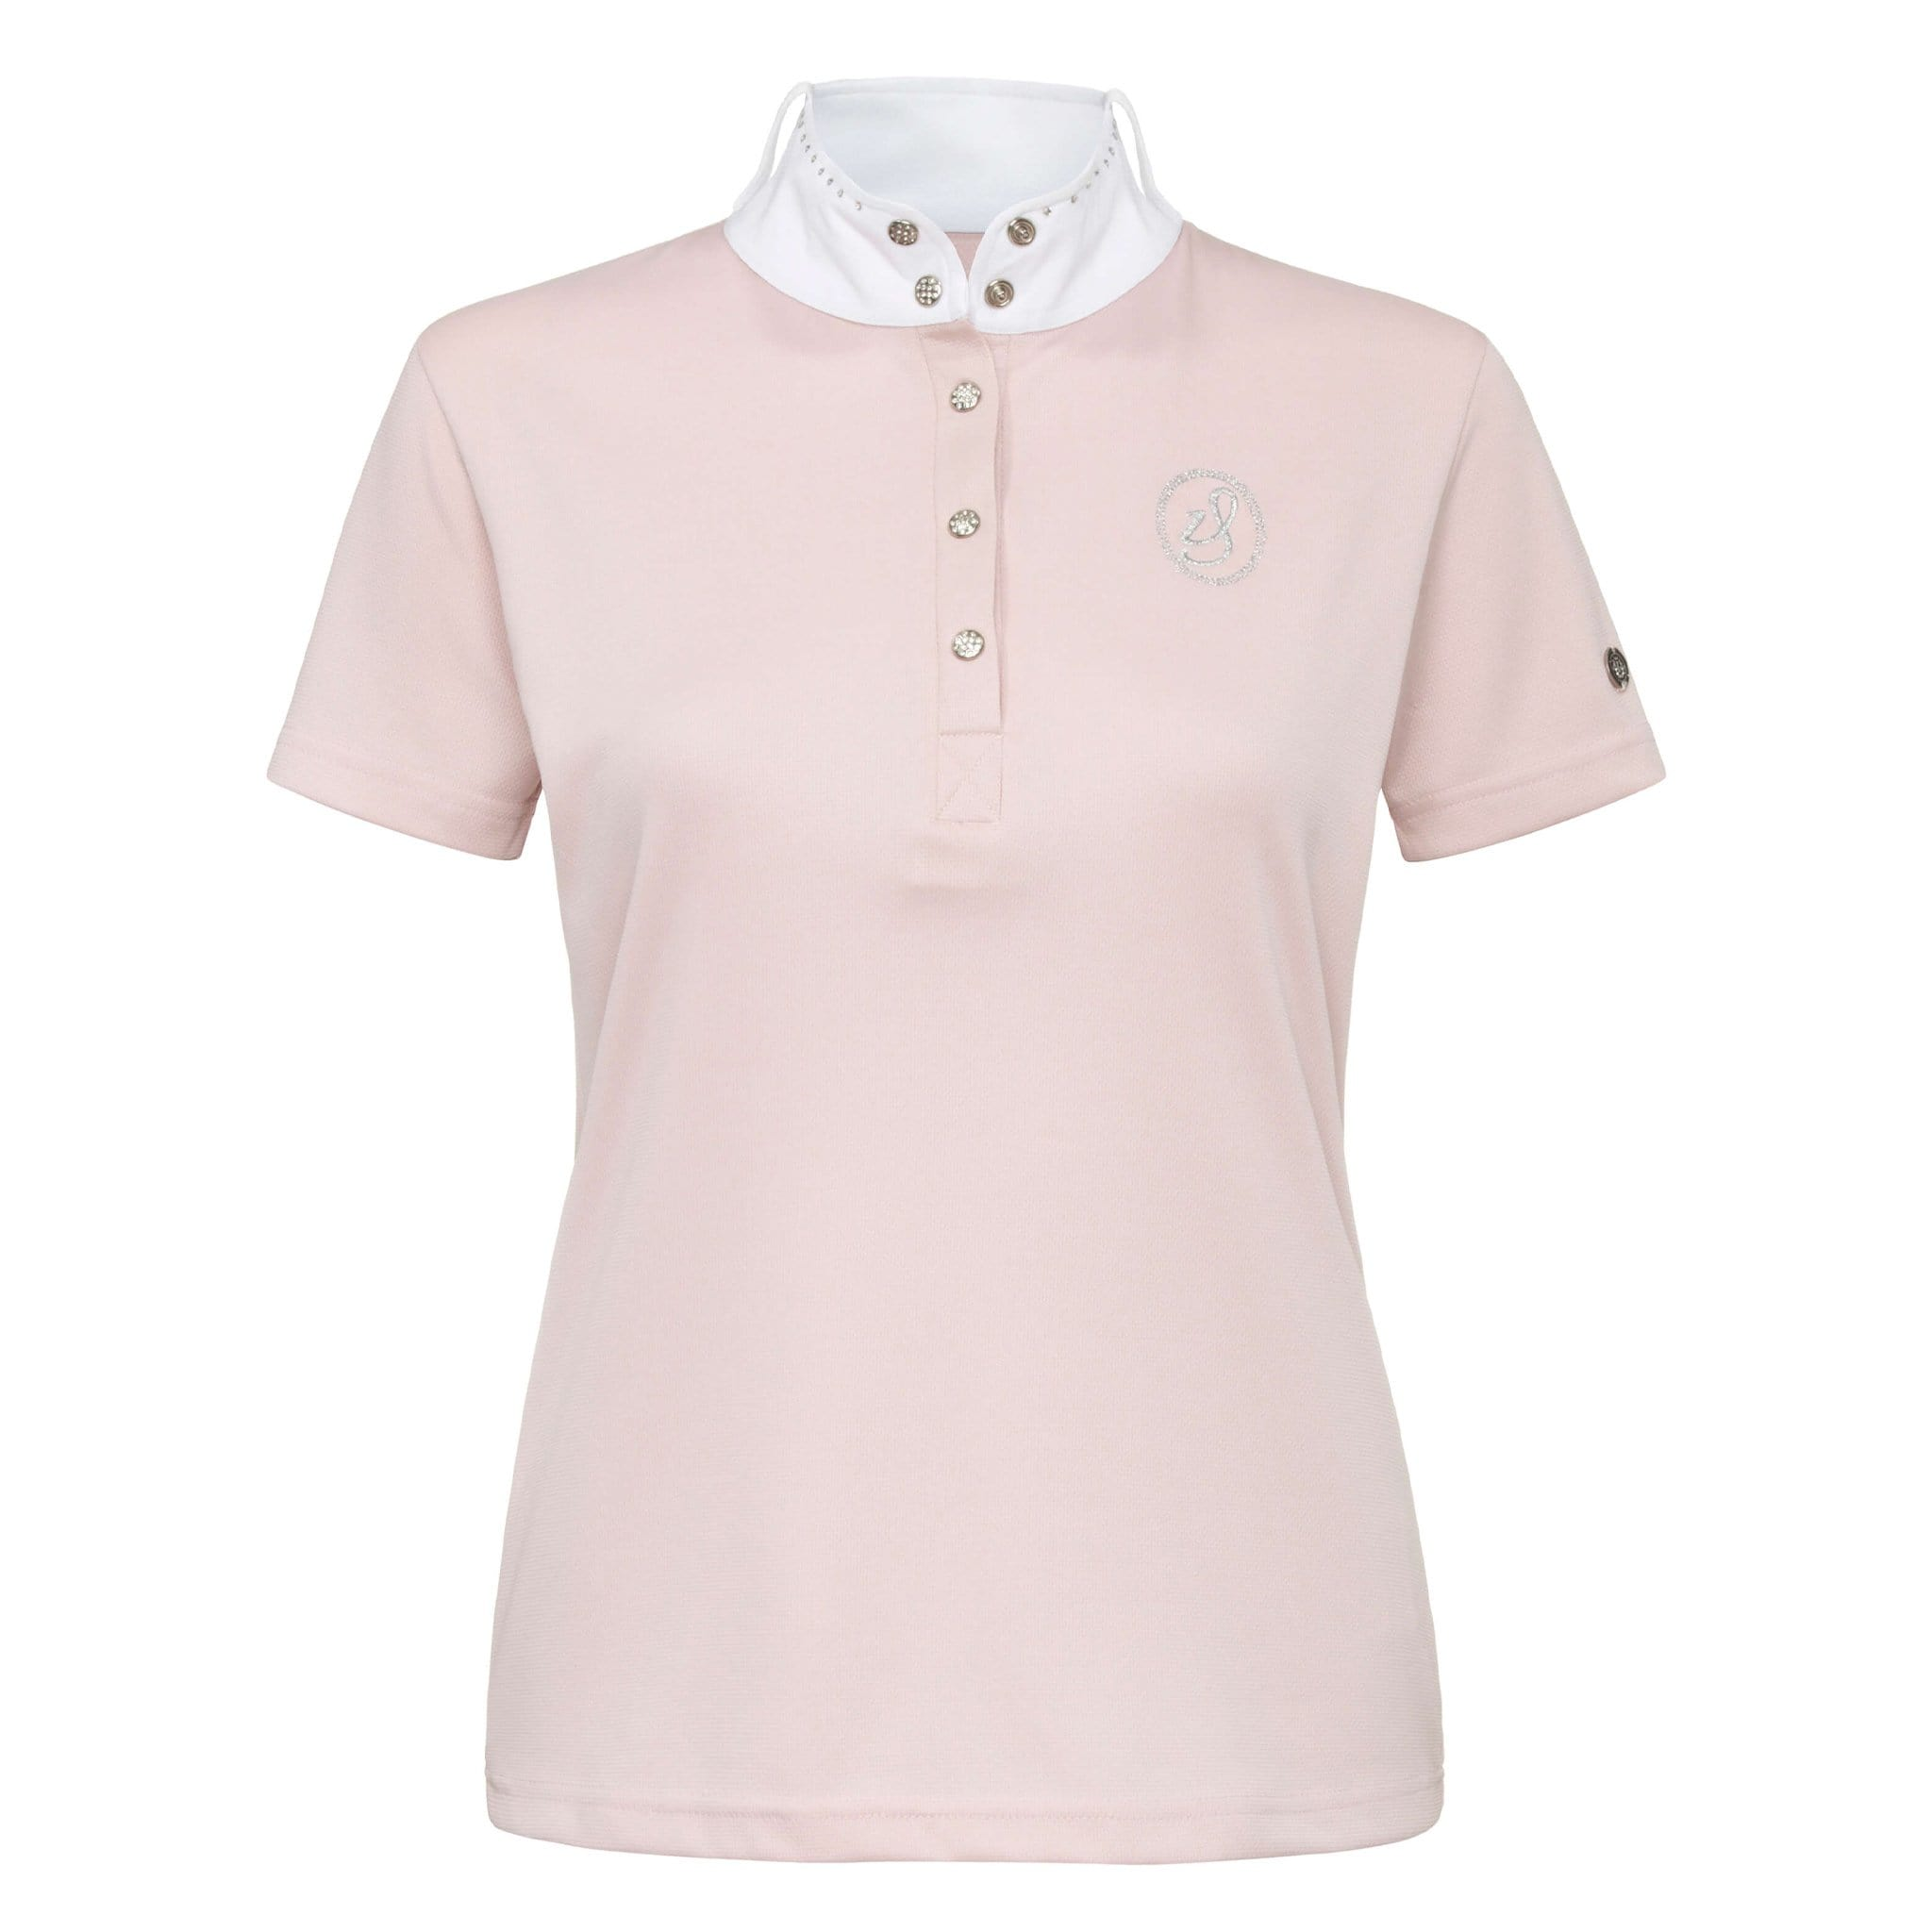 Imperial Riding Starlight Short Sleeve Show Shirt KL35000000 Rose Pink Front View